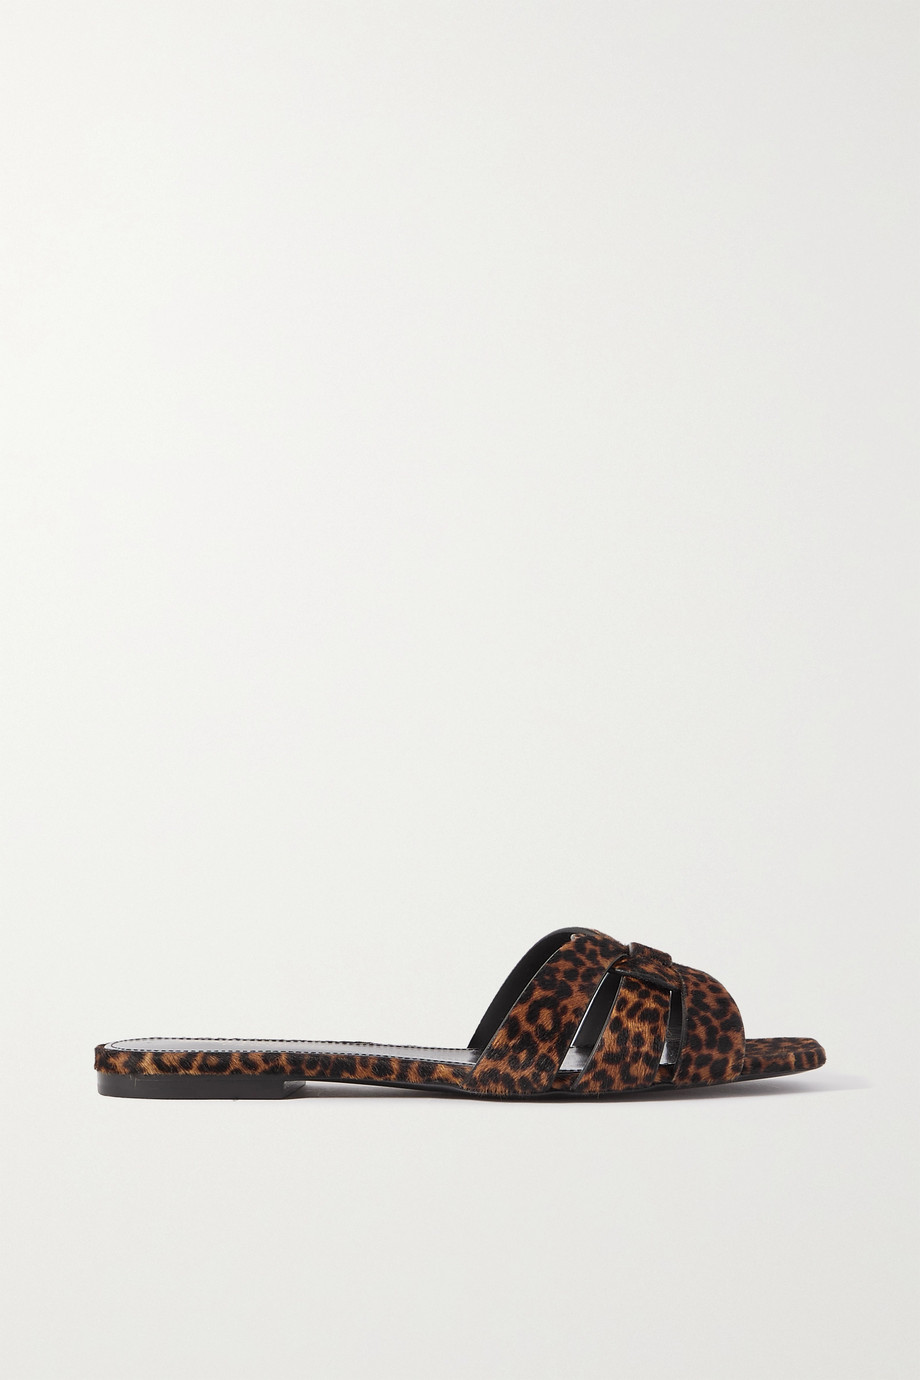 SAINT LAURENT Nu Pieds woven leopard-print calf hair sandals